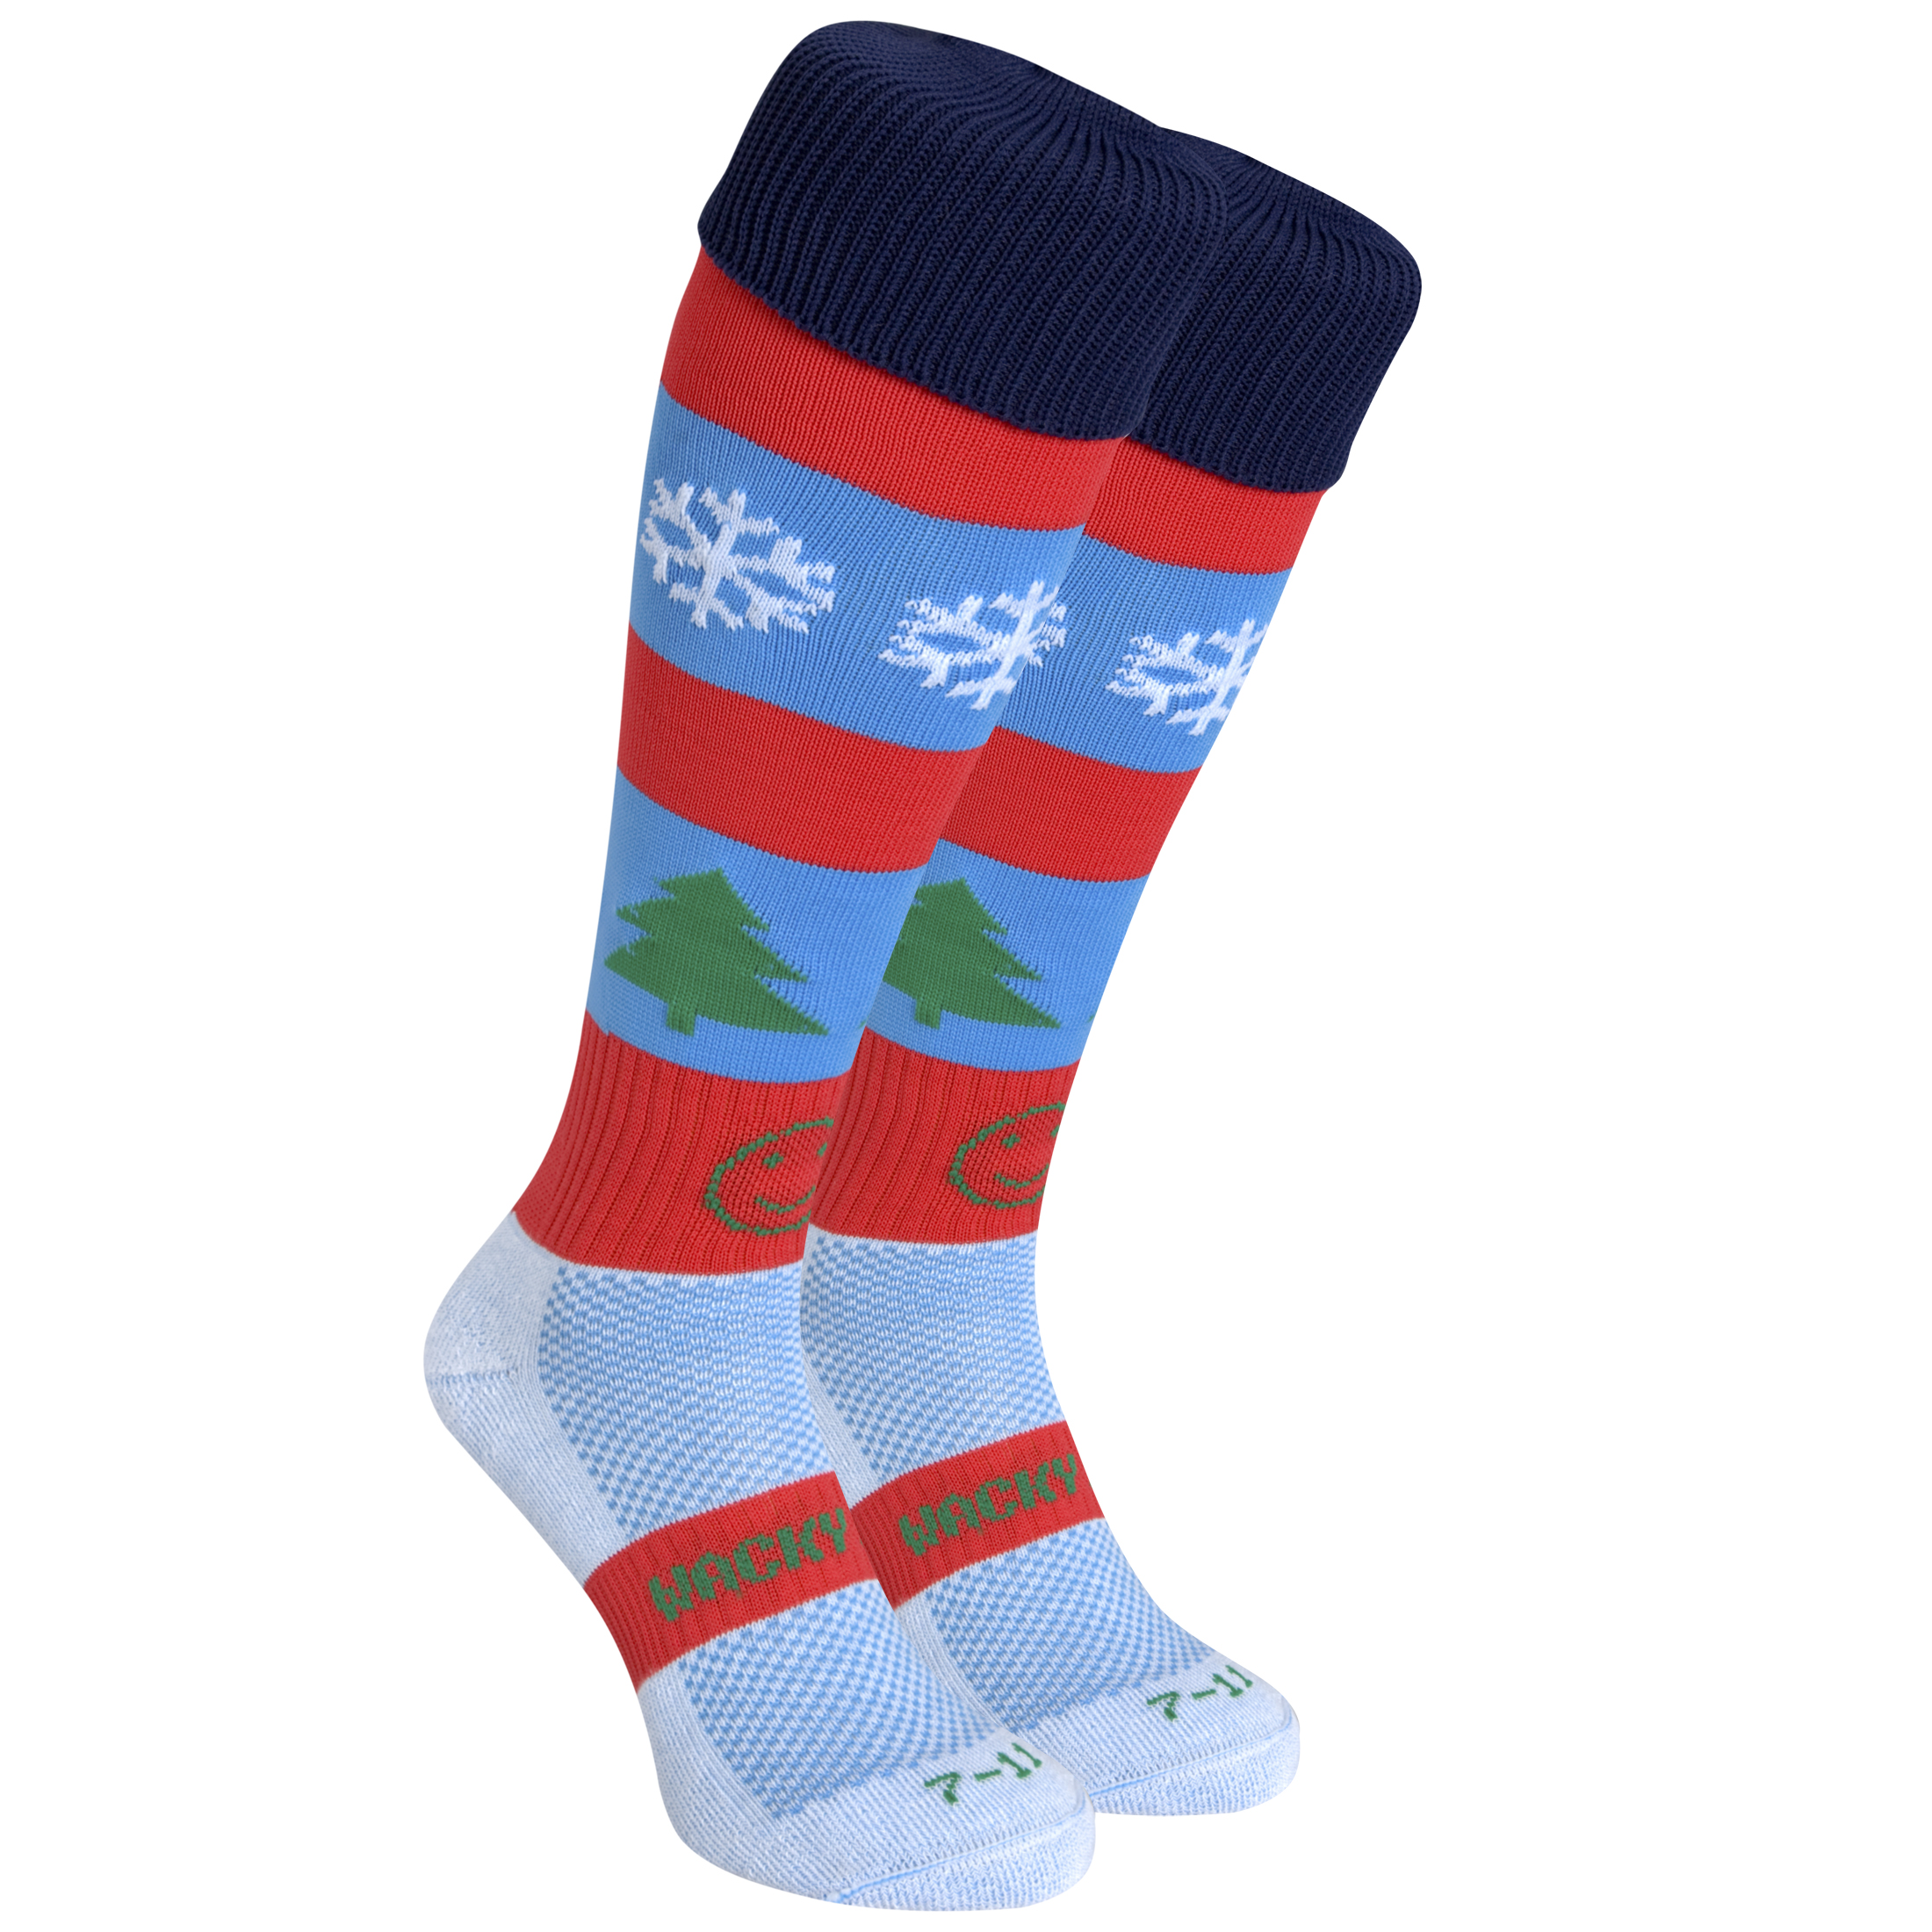 WackySox Festive Frolics Socks - Red/Black/Blue - Size 7-11